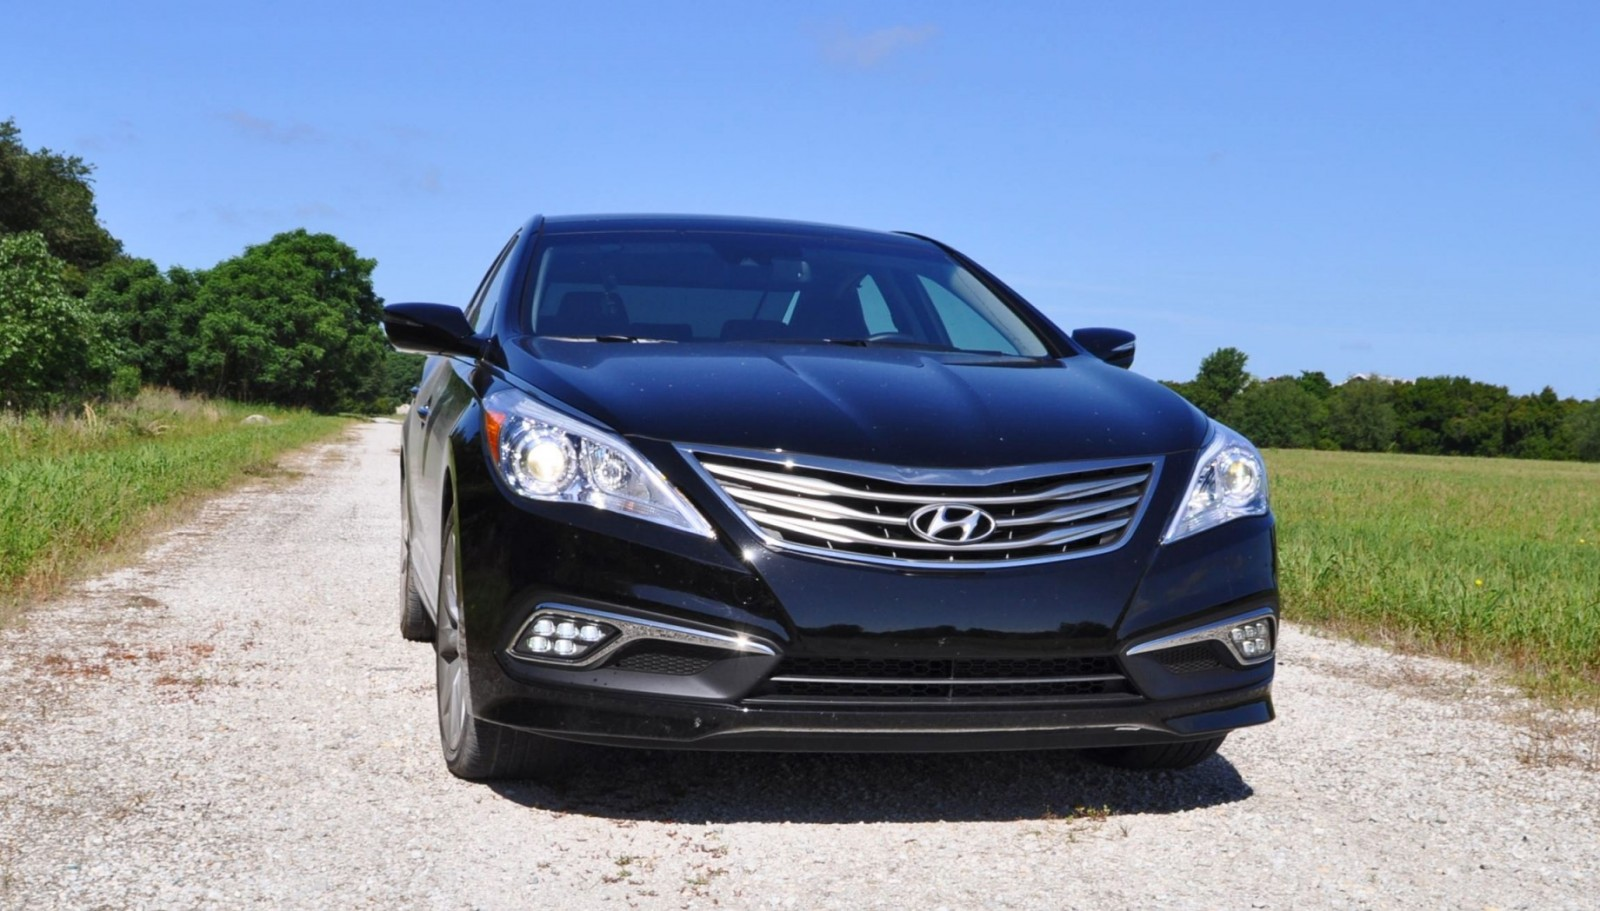 Road Test Review - 2015 Hyundai AZERA Limited 20